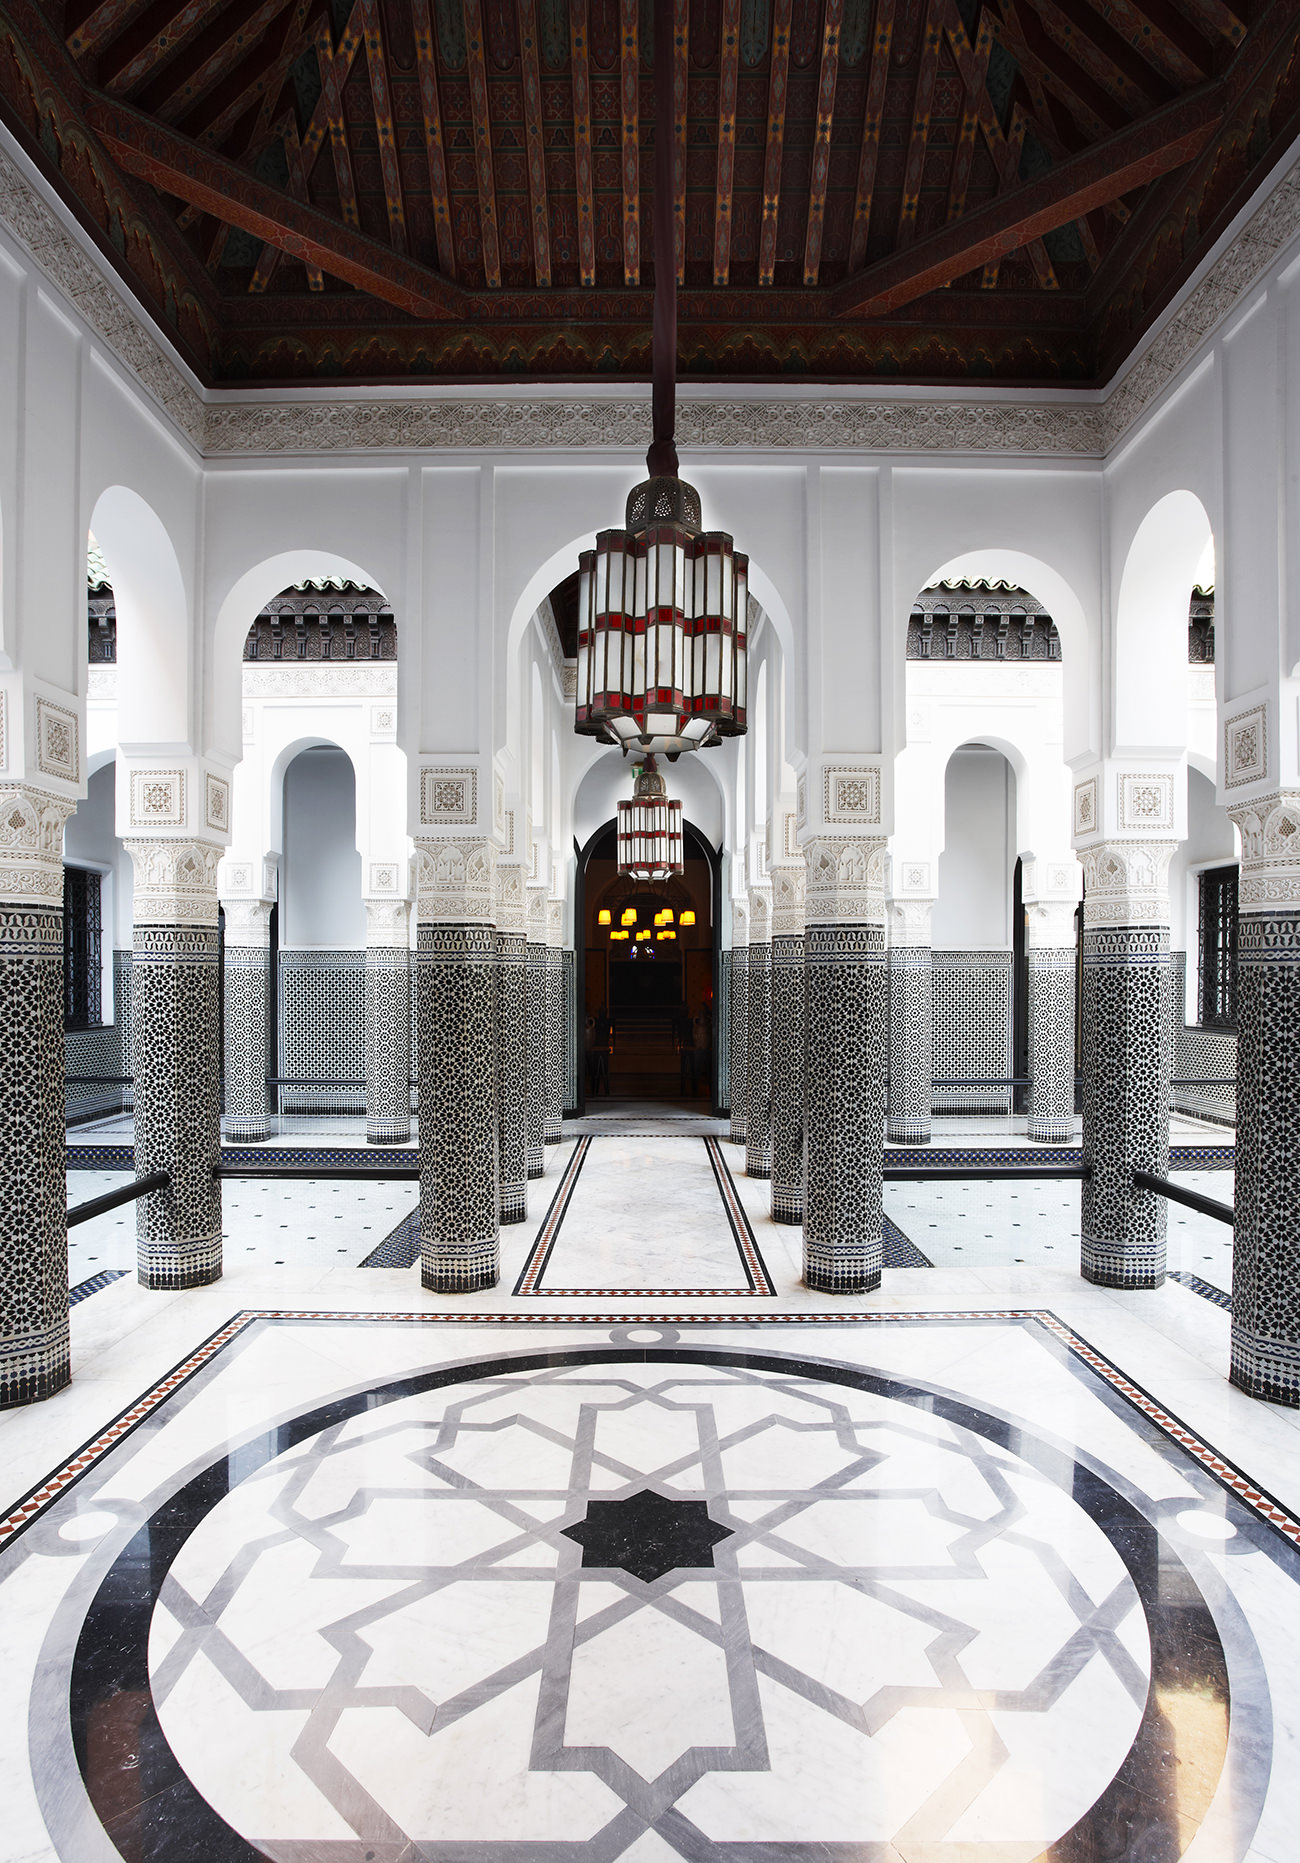 La mamounia un v ritable palace marocain for Hotel design marrakech